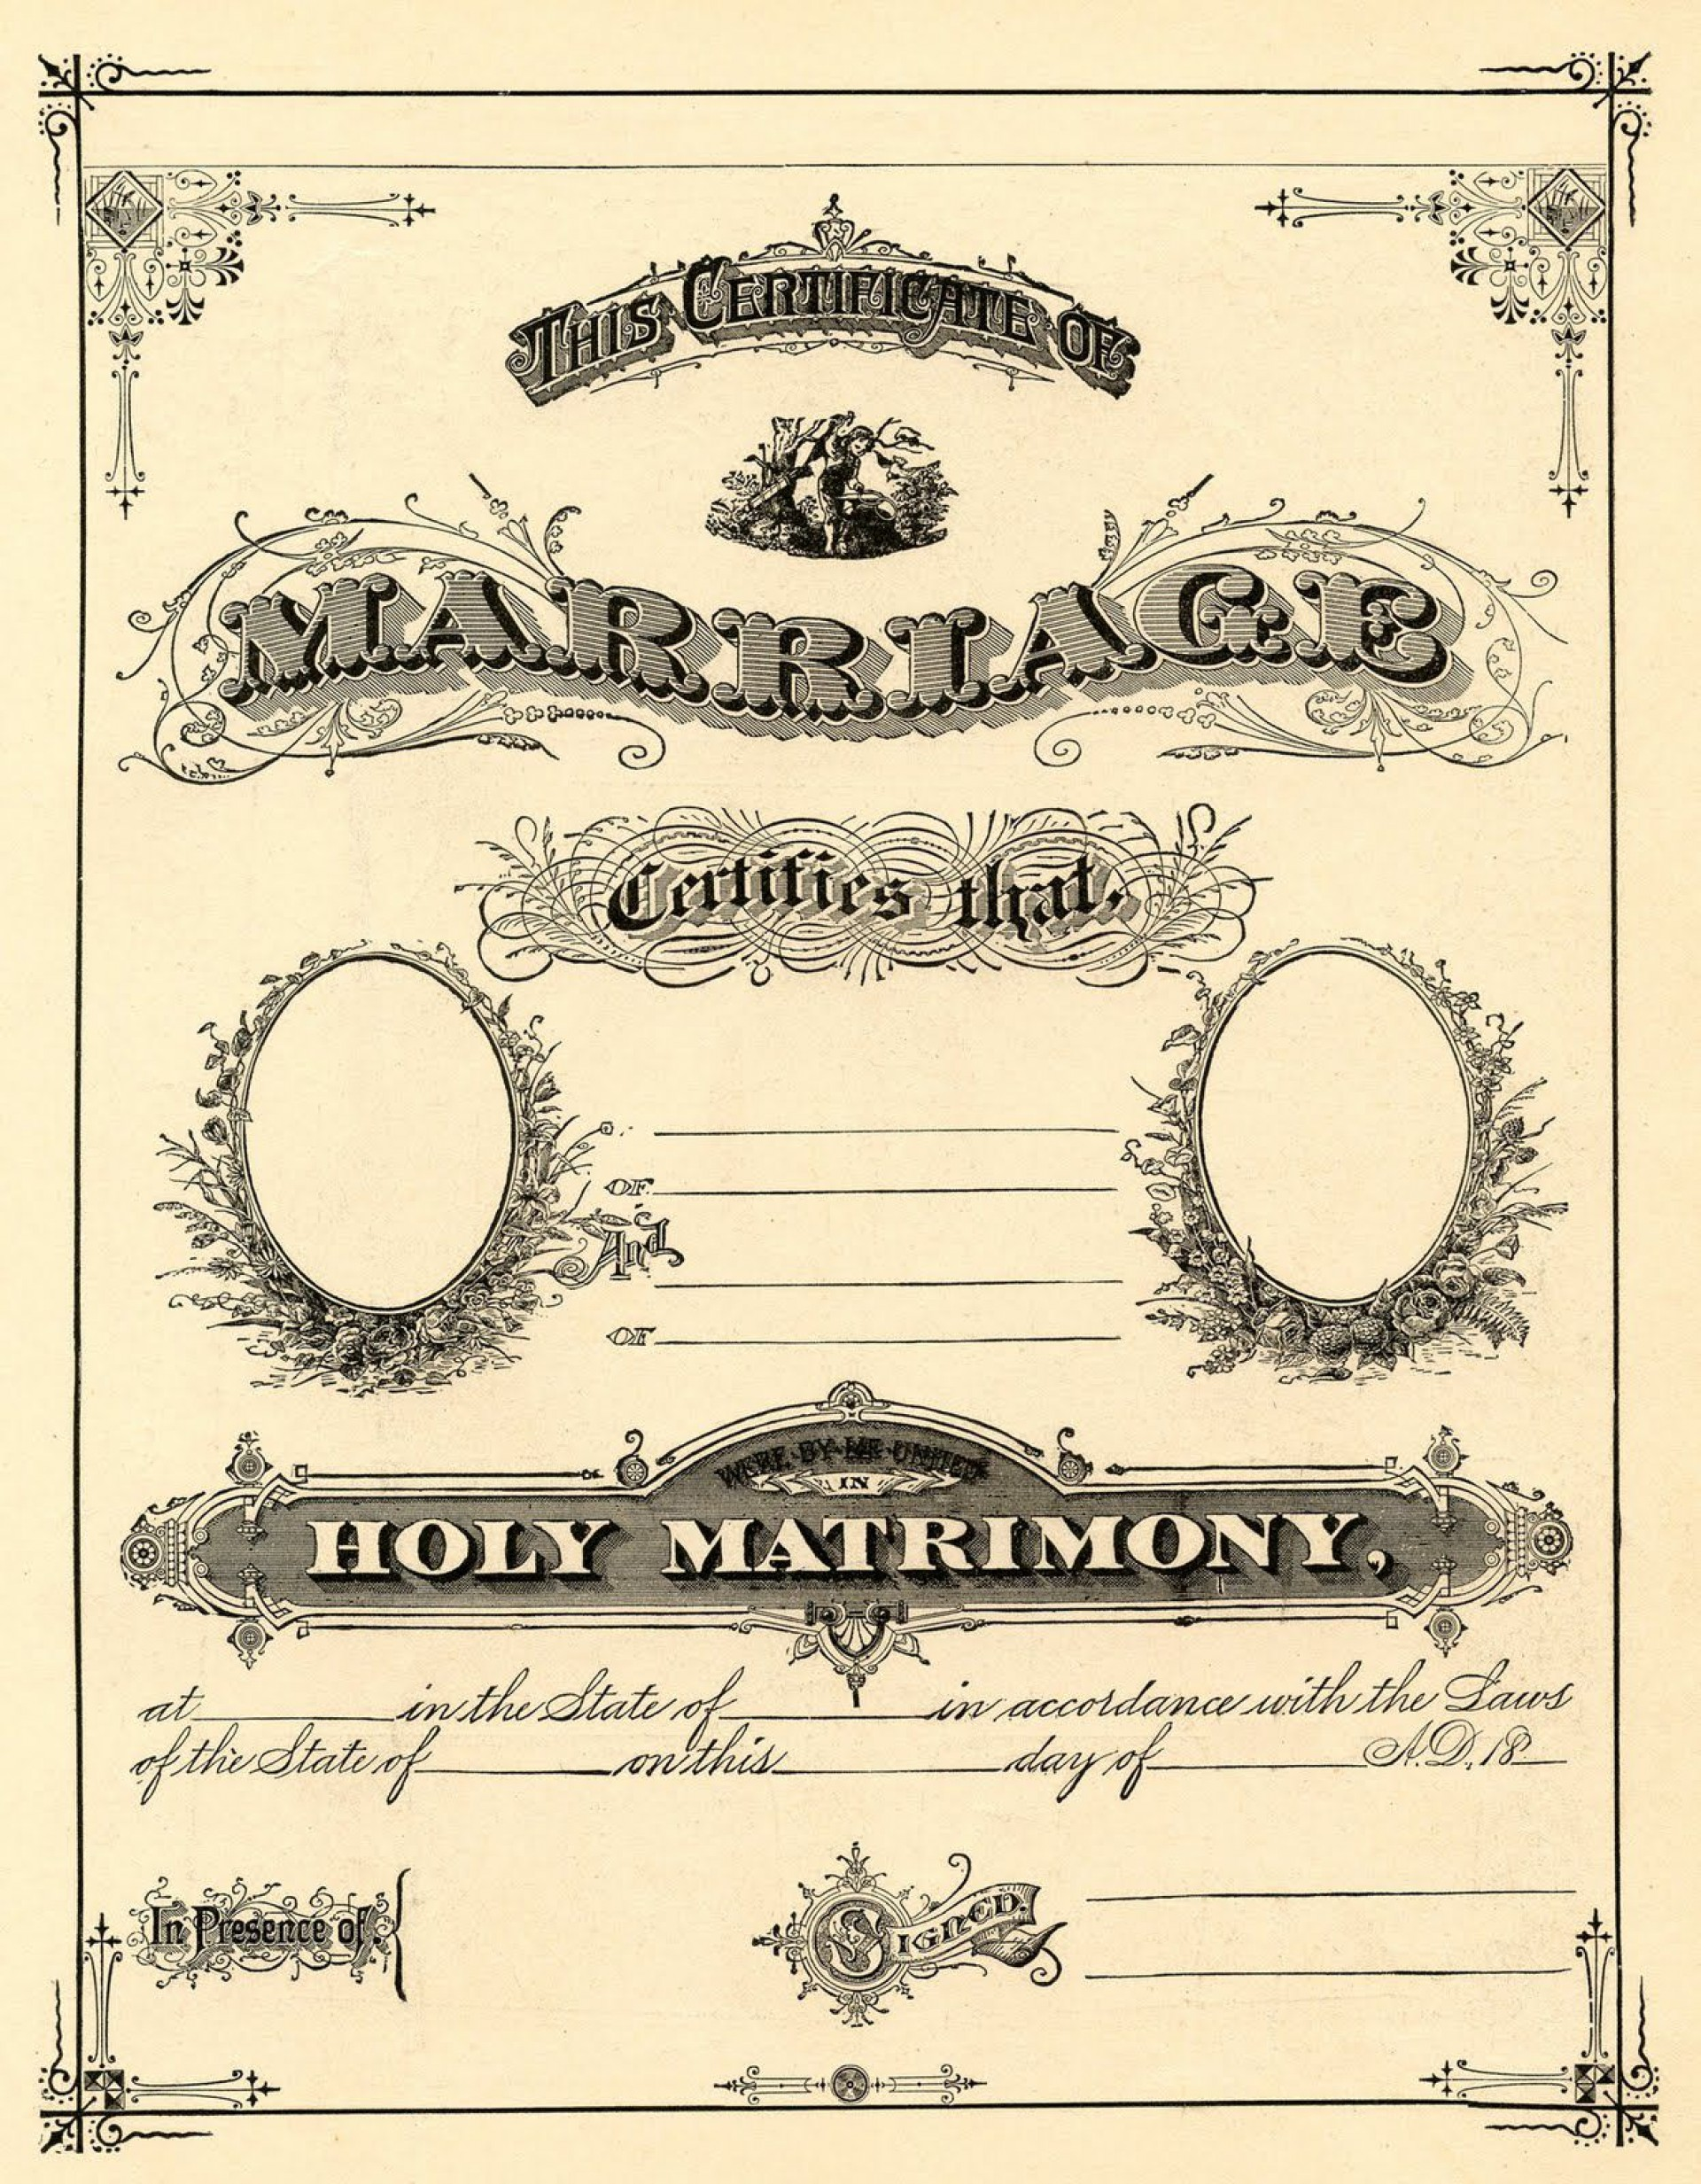 006 Exceptional Free Marriage Certificate Template Picture  Renewal Translation From Spanish To English Wedding Download1920